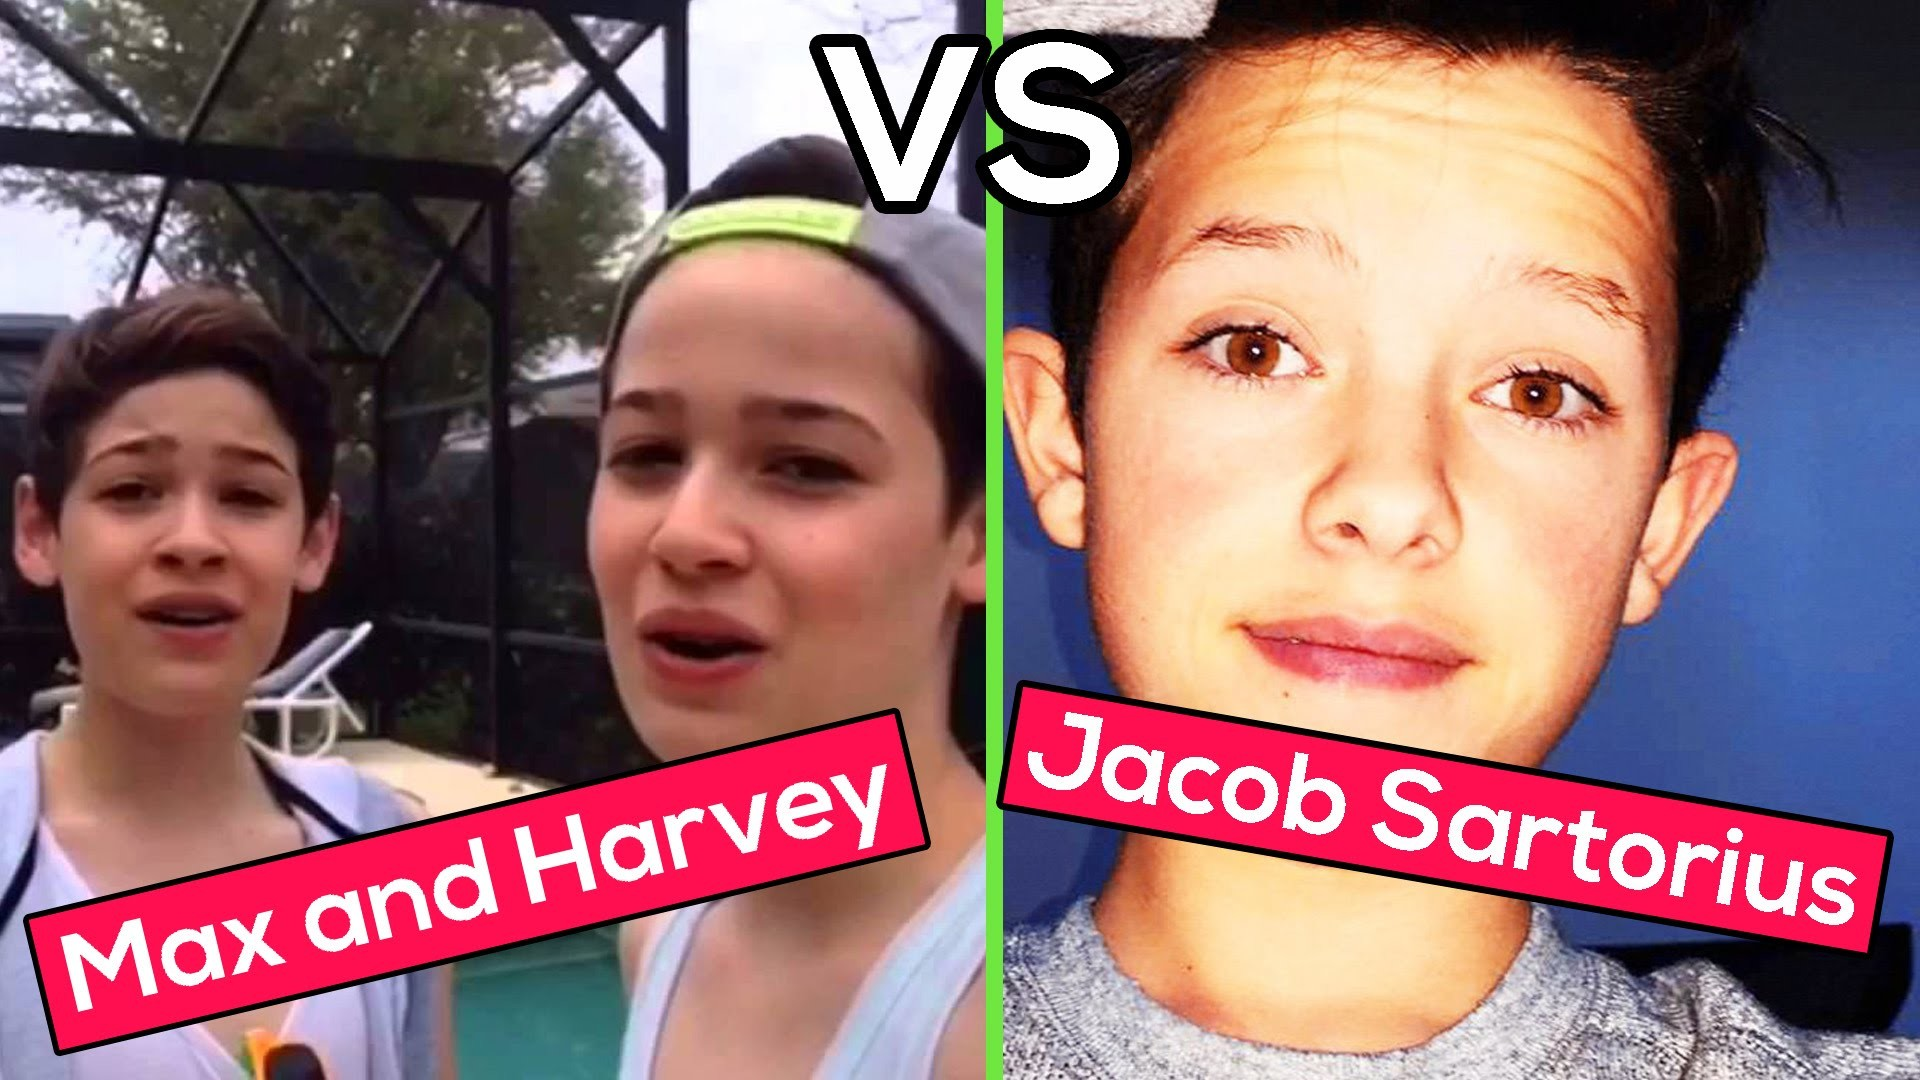 1920x1080 Jacob Sartorius VS. Max and Harvey Twins | Who was better? Musical.ly  Compilation